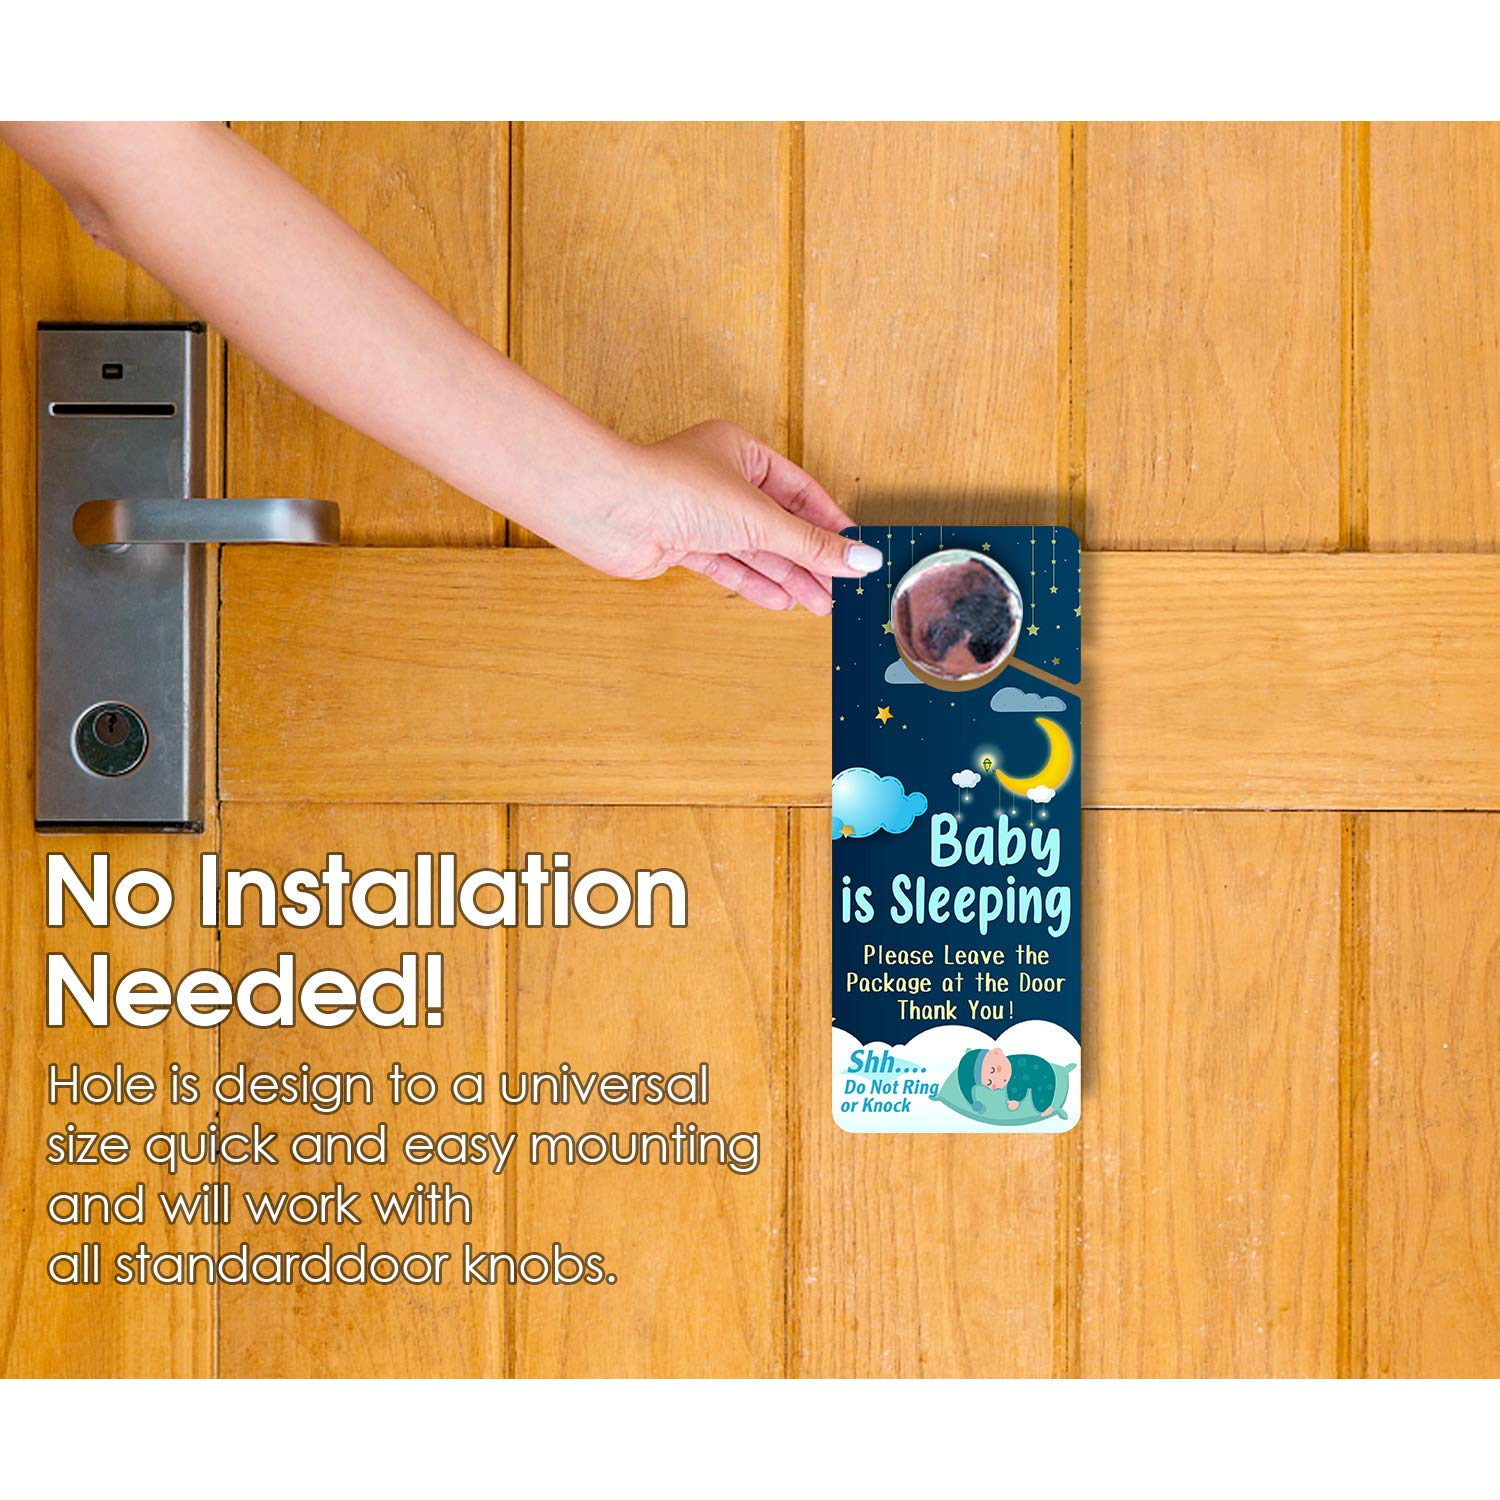 Weatherproof Do Not Knock or Ring UV Printed Door Knob Hanger Sign,3.5 x 8.7 Inch Double Sided Premium Quality PVC Plastic Baby Sleeping Sign 8 Pack Long Lasting